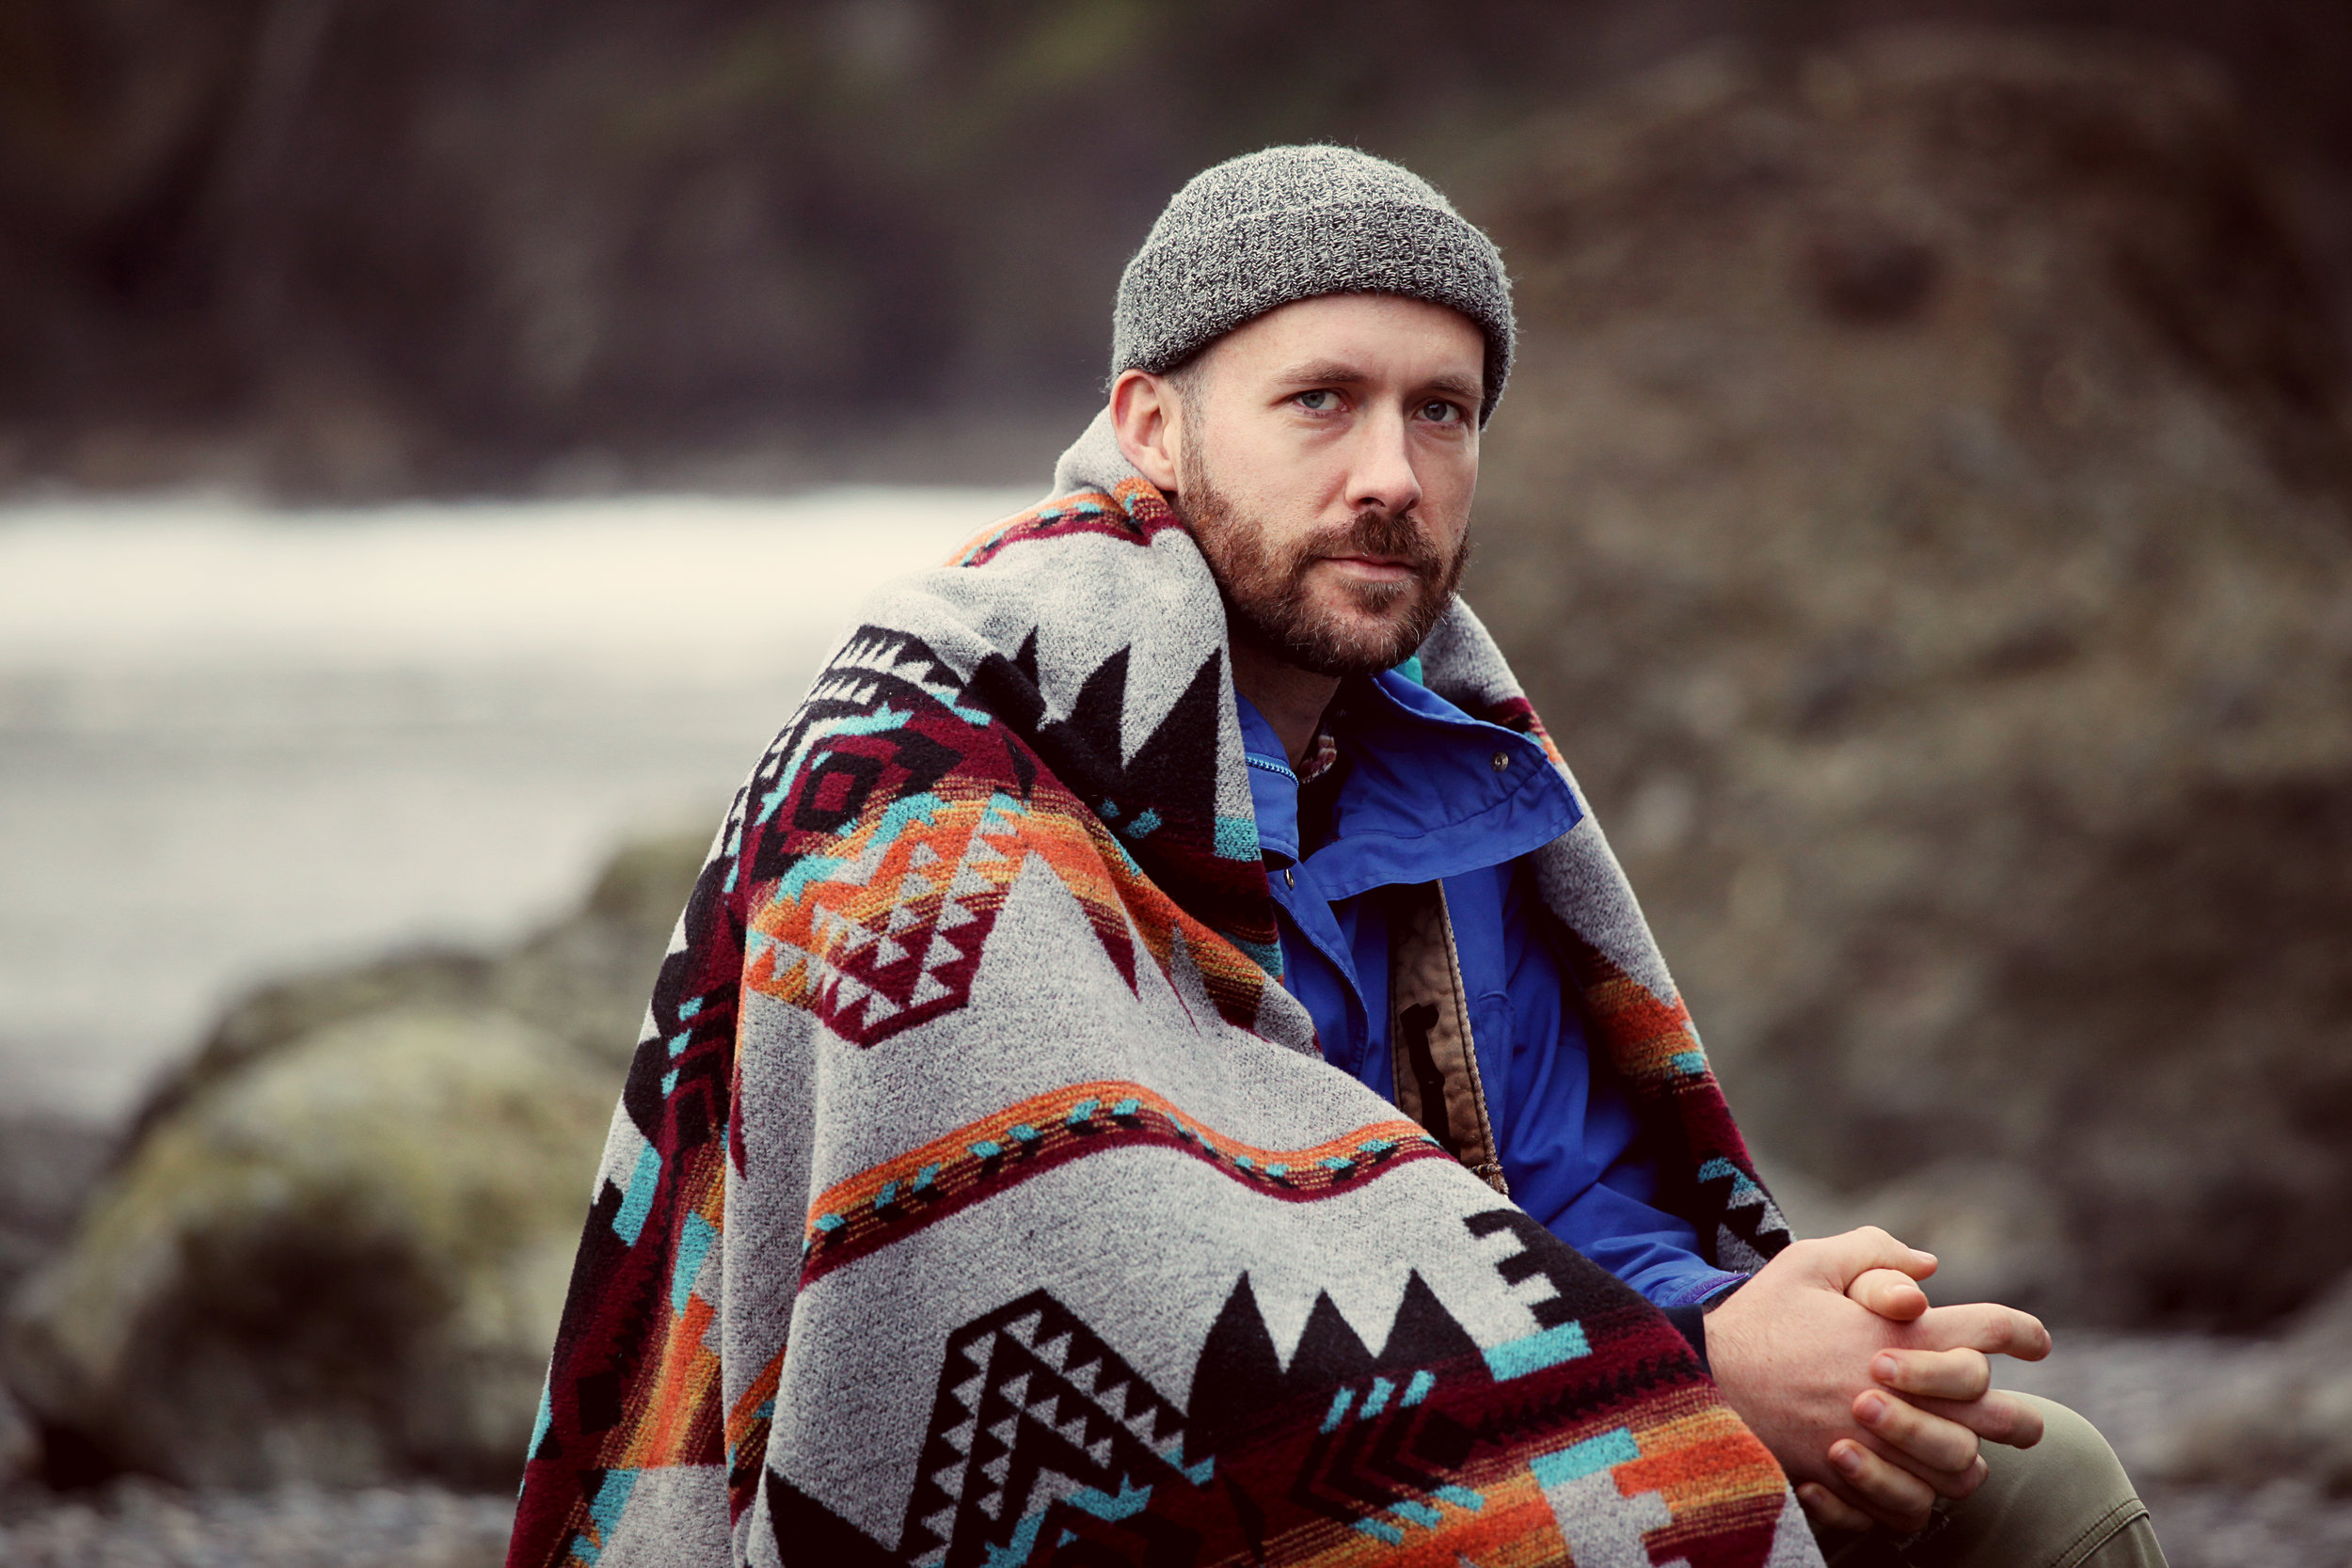 From environmental issues and adventure travel to leisure trends and small business owners, Ryan MacDonald follows his natural curiosities to tell stories about the world around him. His desire to write and produce narratives about experiences that provoke, inspire or educate others propels each story he pursues.  Following this path led him to the Canada's Yukon Territory where he interviewed and photographed a world champion gold panner in the icy waters of the Klondike River and to the Channel Islands National Park in California to report on a group of scientists, lead by Peter Sharpe, who track and study the bald eagle populations. (This story was published by BBC Travel as part of the site's coverage of the National Parks Centennial Anniversary in June 2016.)  Ryan contributes regularly to  BBC ,  Thrillist  and  Sierra  with feature stories and personal essays about travel, destinations and adventures. He began his journalism career at  The Advocate,  the leading LGBT national news magazine, where he wrote daily news briefs, pop culture commentary, and reported on long term projects during the historic gay marriage battles of 2004.  Today Ryan uses all forms of media to tell interesting and compelling narratives - from traditional copy writing to television production to audio podcasting. He has produced content for Netflix, NBC, CBS, NPR and many other outlets.